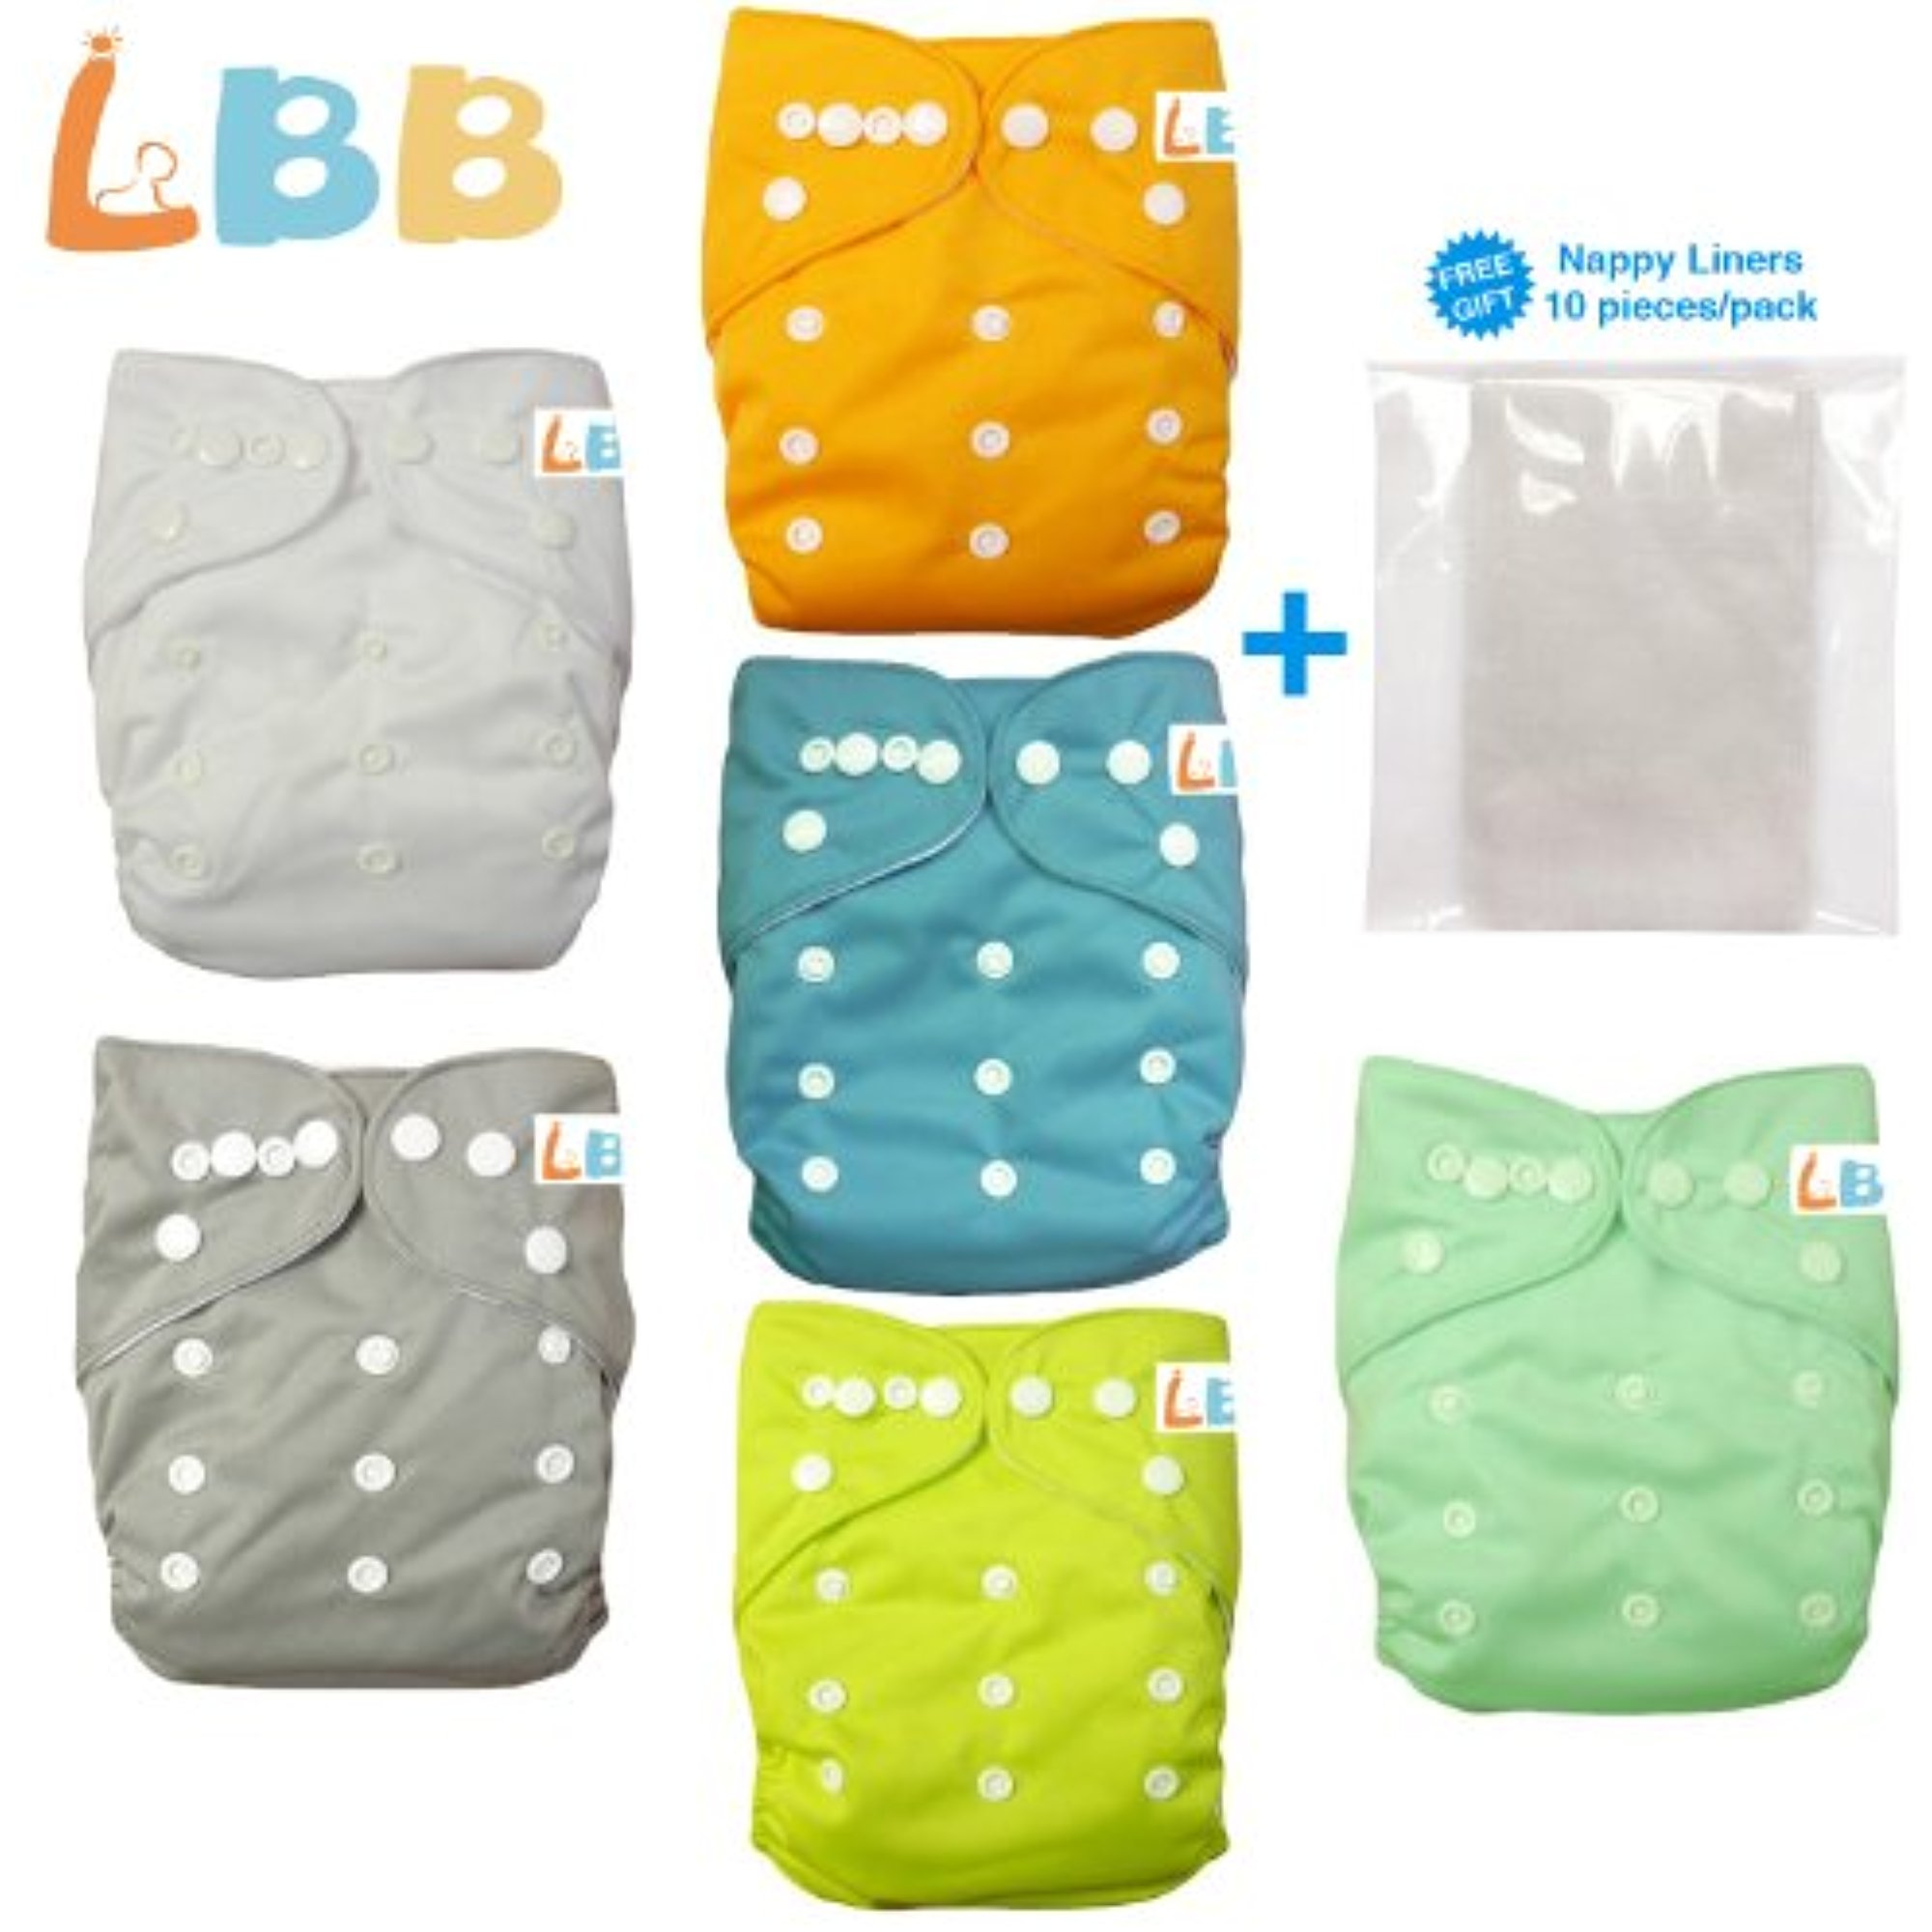 LBB Baby Cloth Diapers Washable With Adjustable Double Rows of Snaps, 6pcs Pack(Neutral Color)